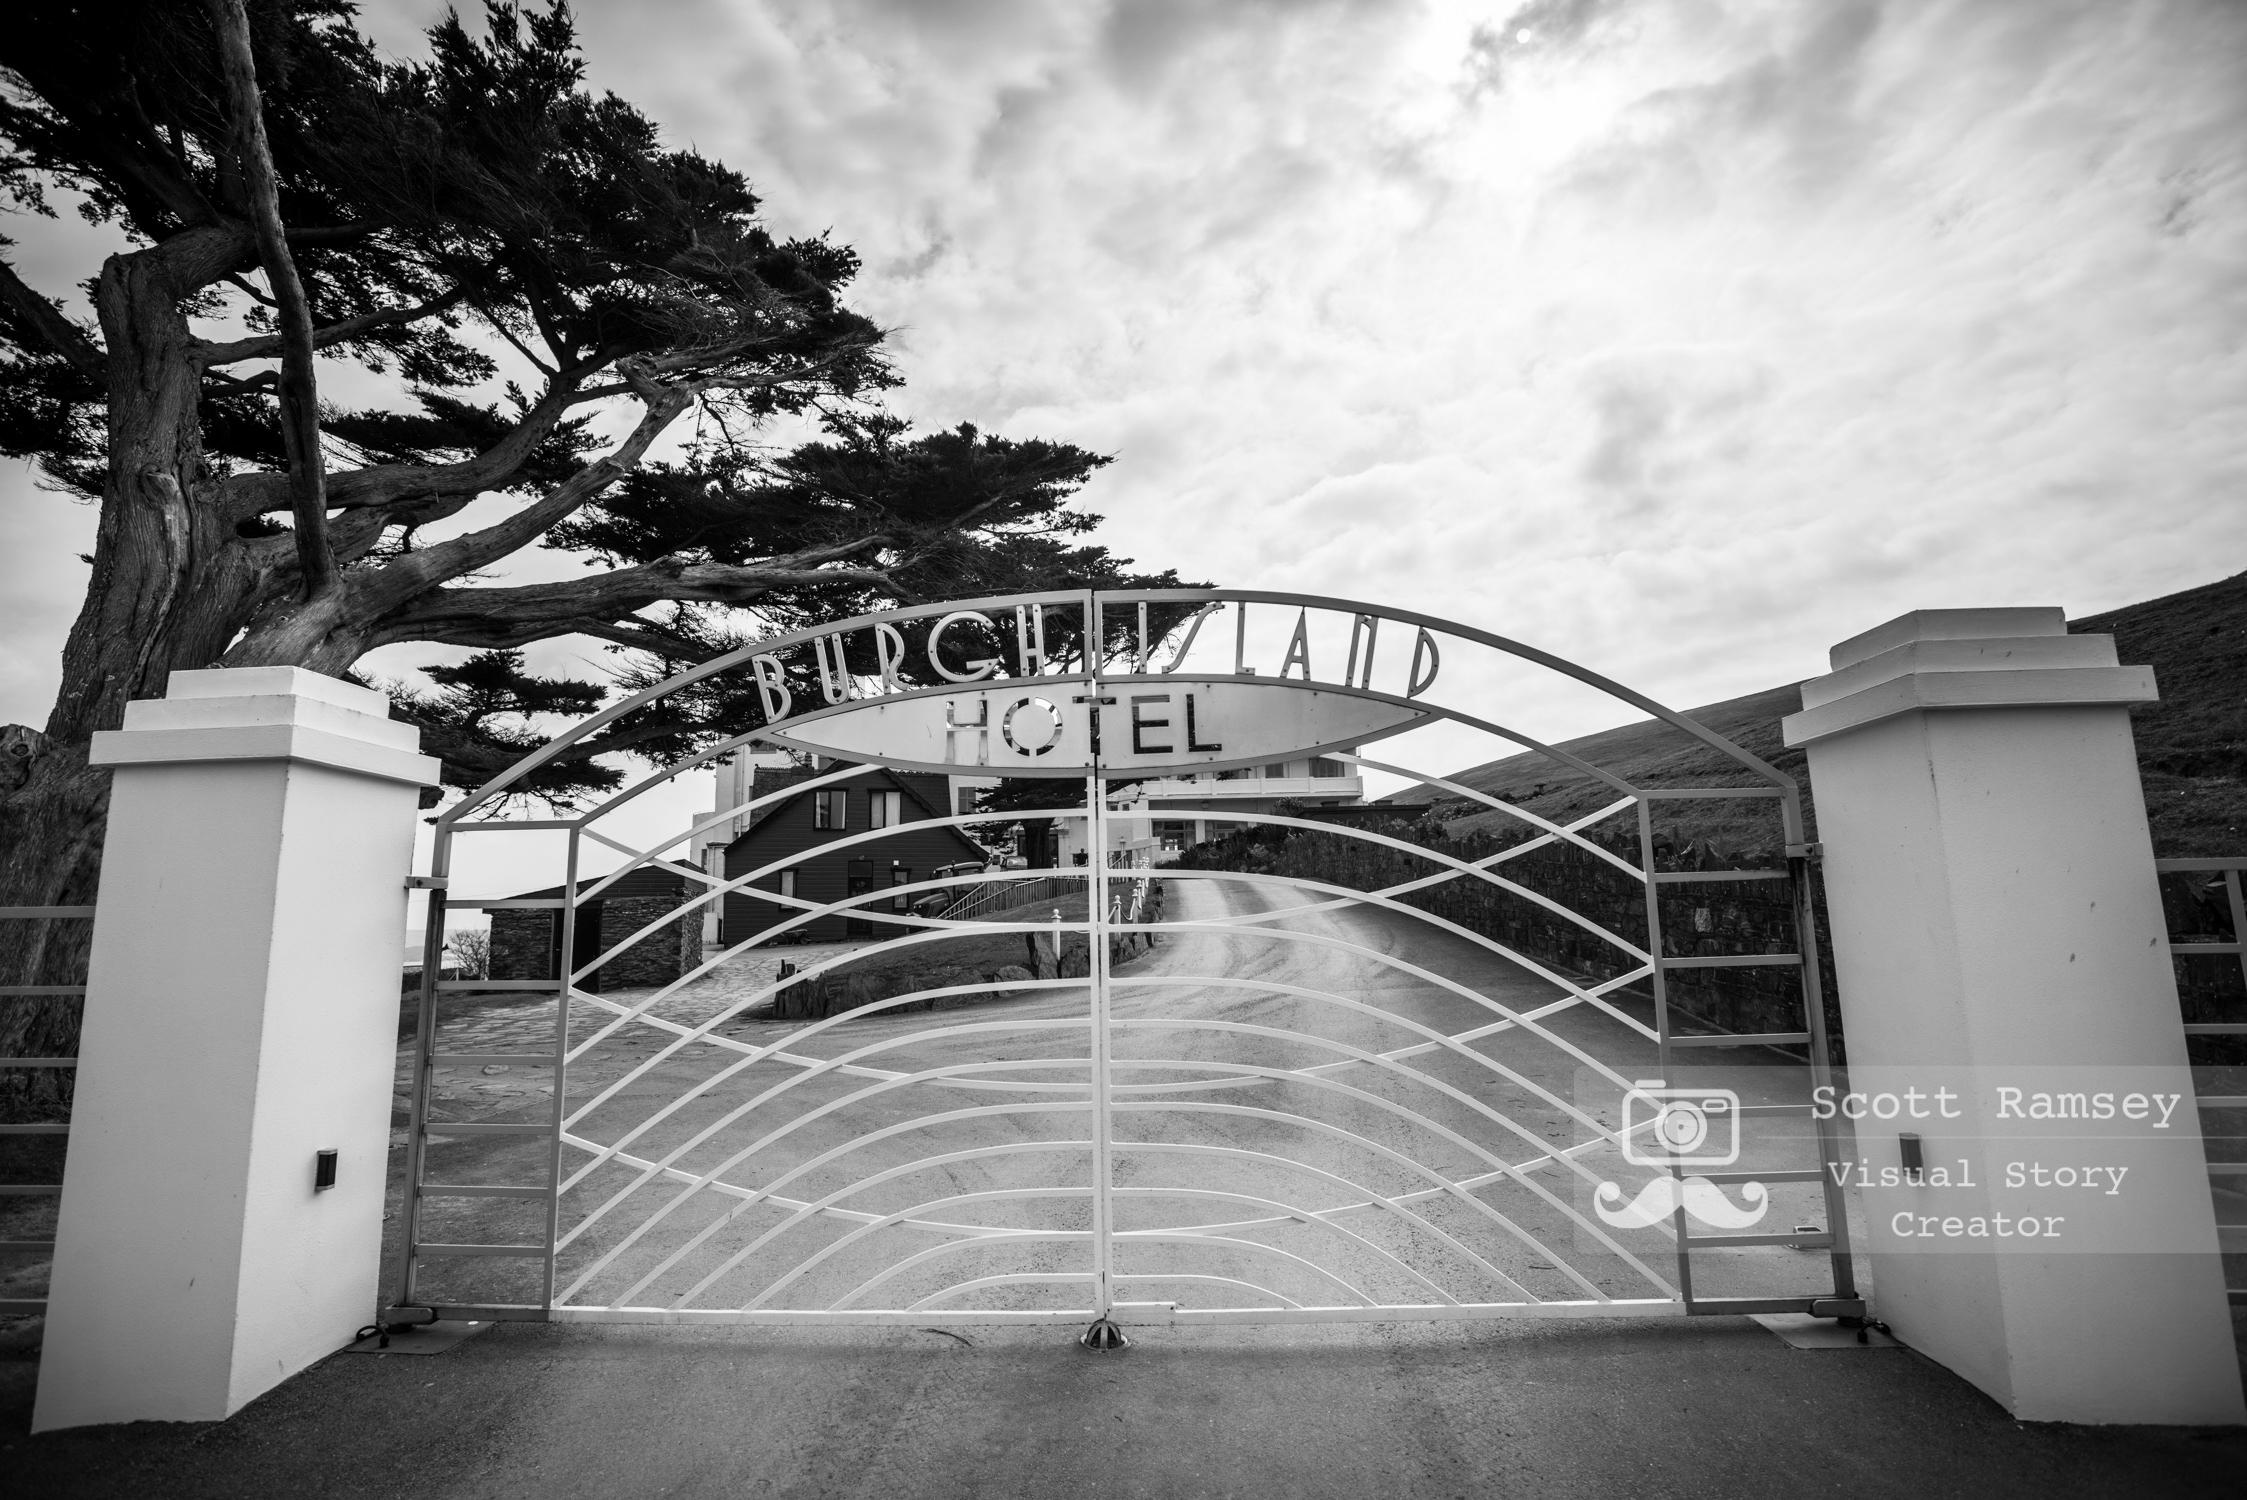 The Gate to the Burgh Island Hotel in Devon, England.  Photo © Scott Ramsey. Originally a wooden house used by guests as a weekend retreat in the 1890s the very popular Art Deco style hotel was built in 1927 by the filmmaker Archibald Nettlefold. Now a Grade II listed building,  Burgh Island Hotel has been visited by such notable guests as Edward VIII and Wallis Simpson,Winston Churchill and The Beatles to name just a few.